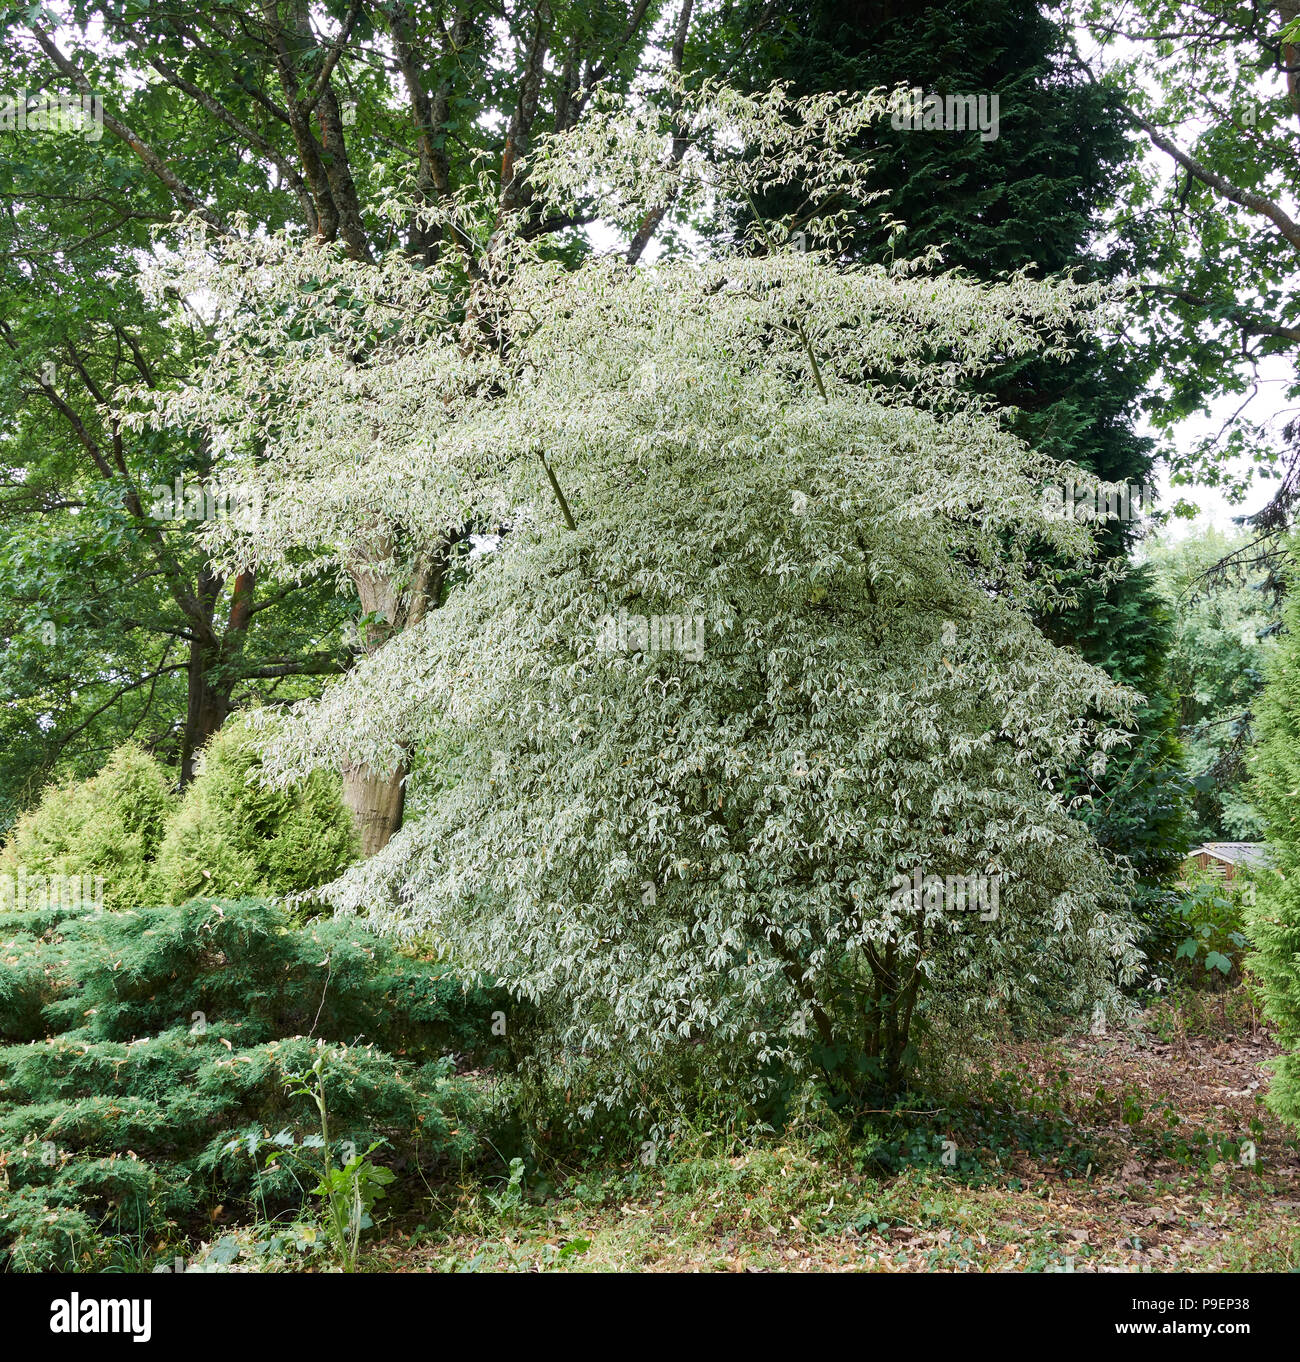 Known as the wedding-cake tree, because of its distinctive, horizontal, tiered habit, this tree makes a lovely focal point for a small to medium-sized - Stock Image